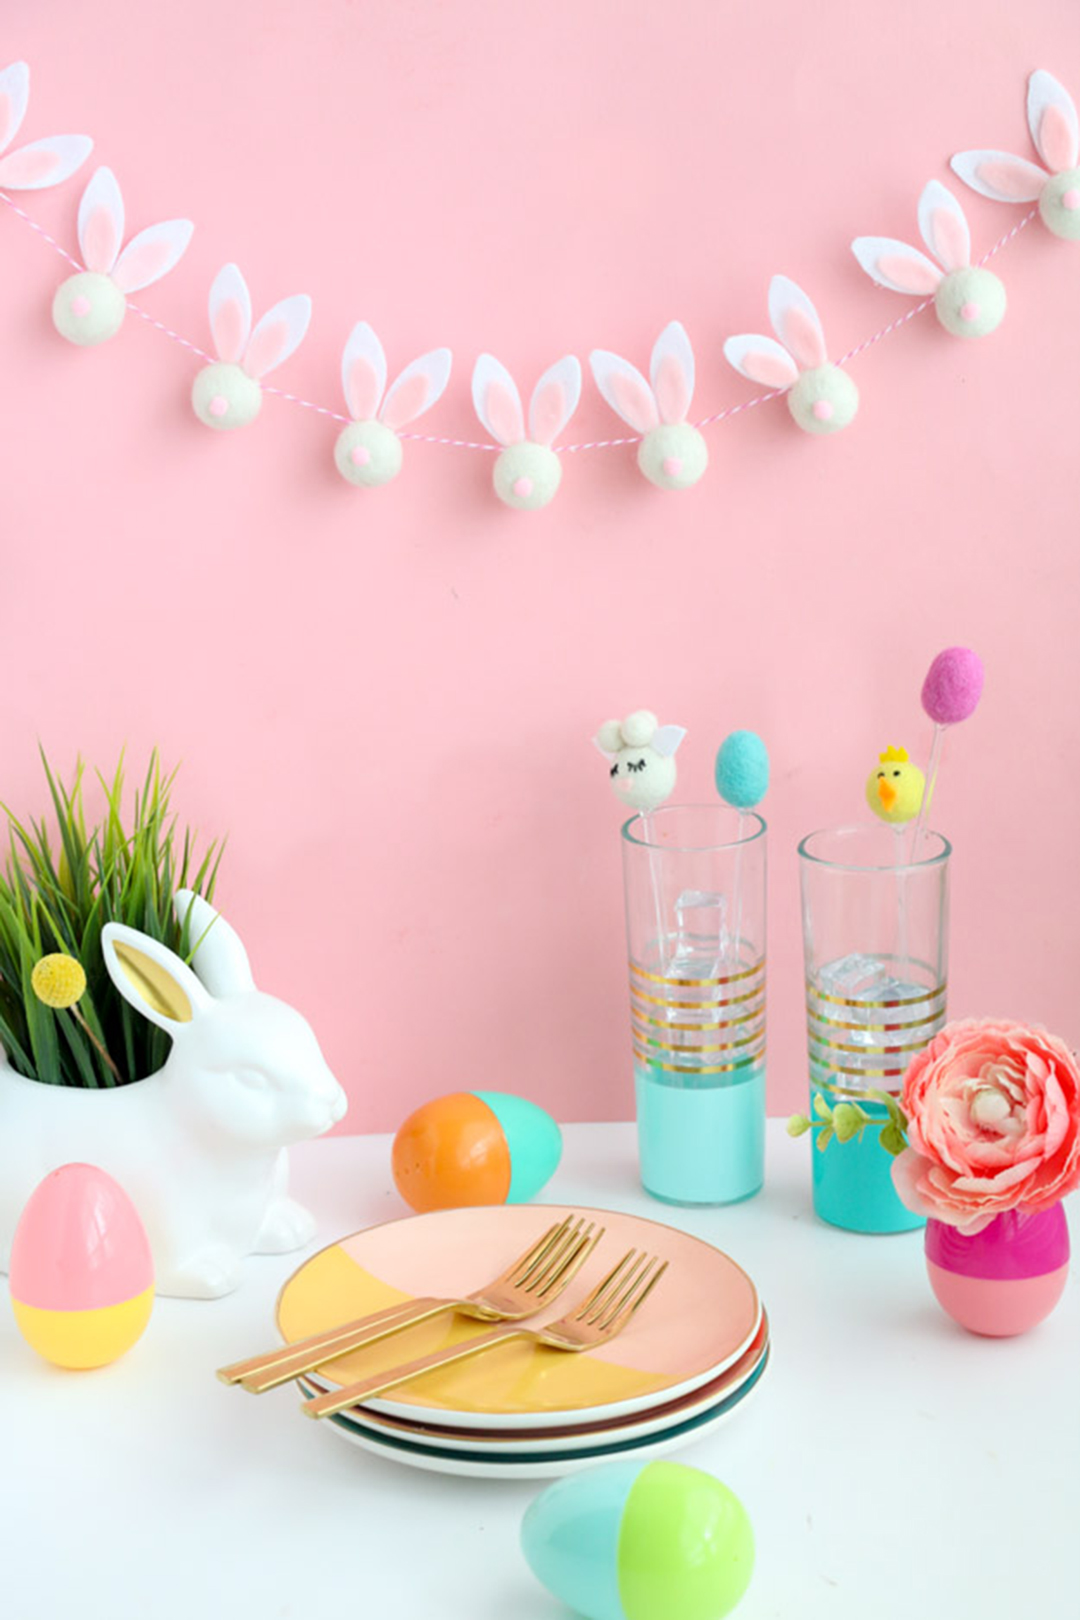 DIY Felt Ball Bunny Easter Garland from  A Kailo Chic Life .